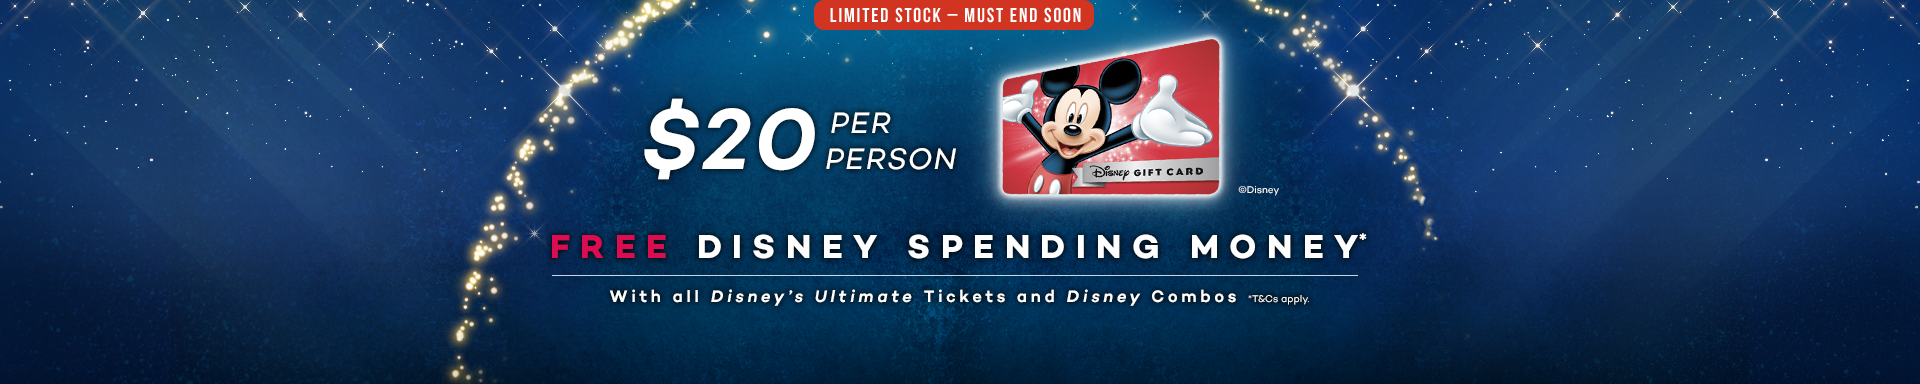 7c570d481e607  20 Disney Spending Money Per Person